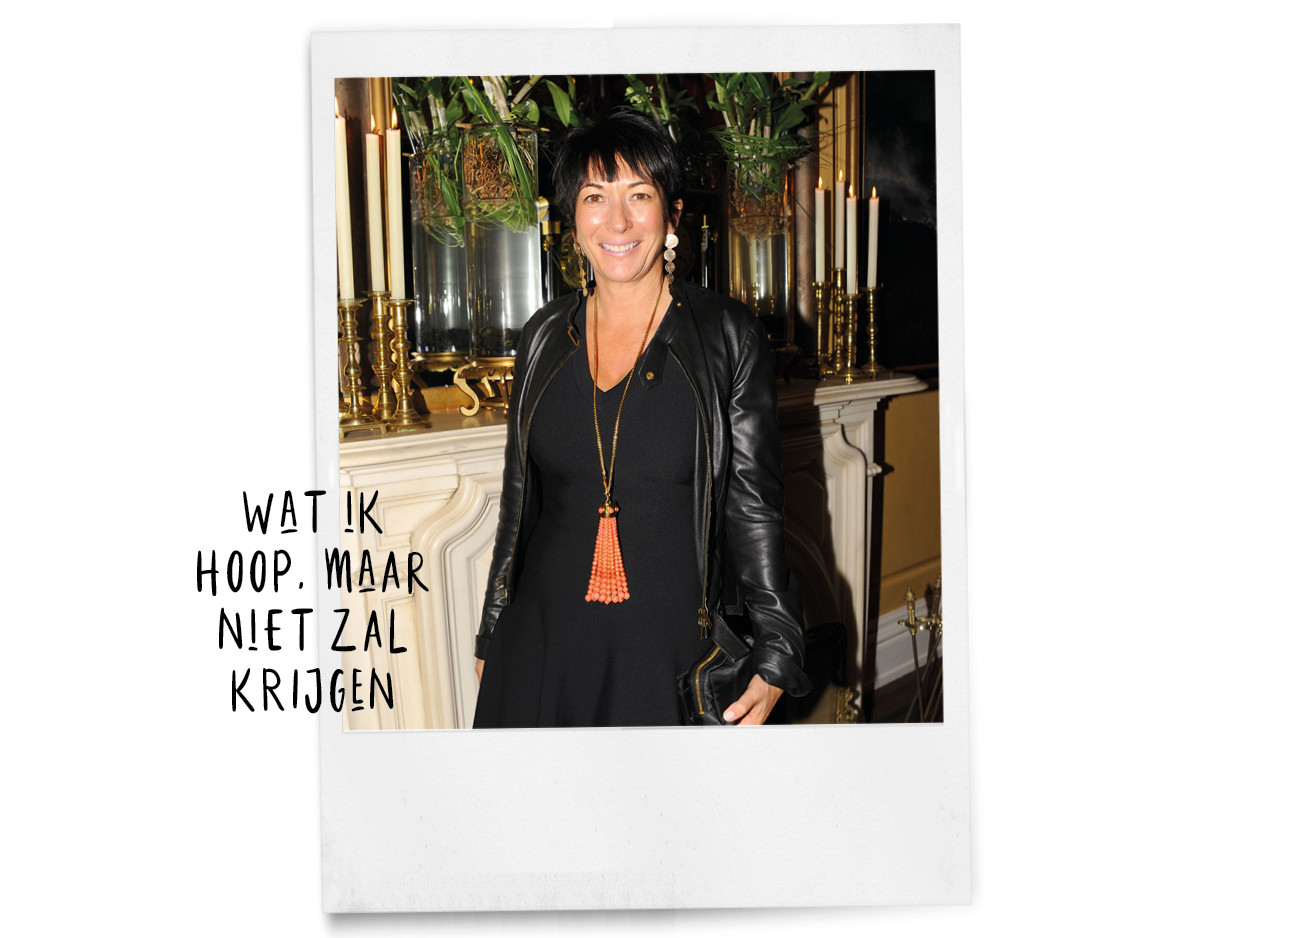 Over Ghislaine Maxwell